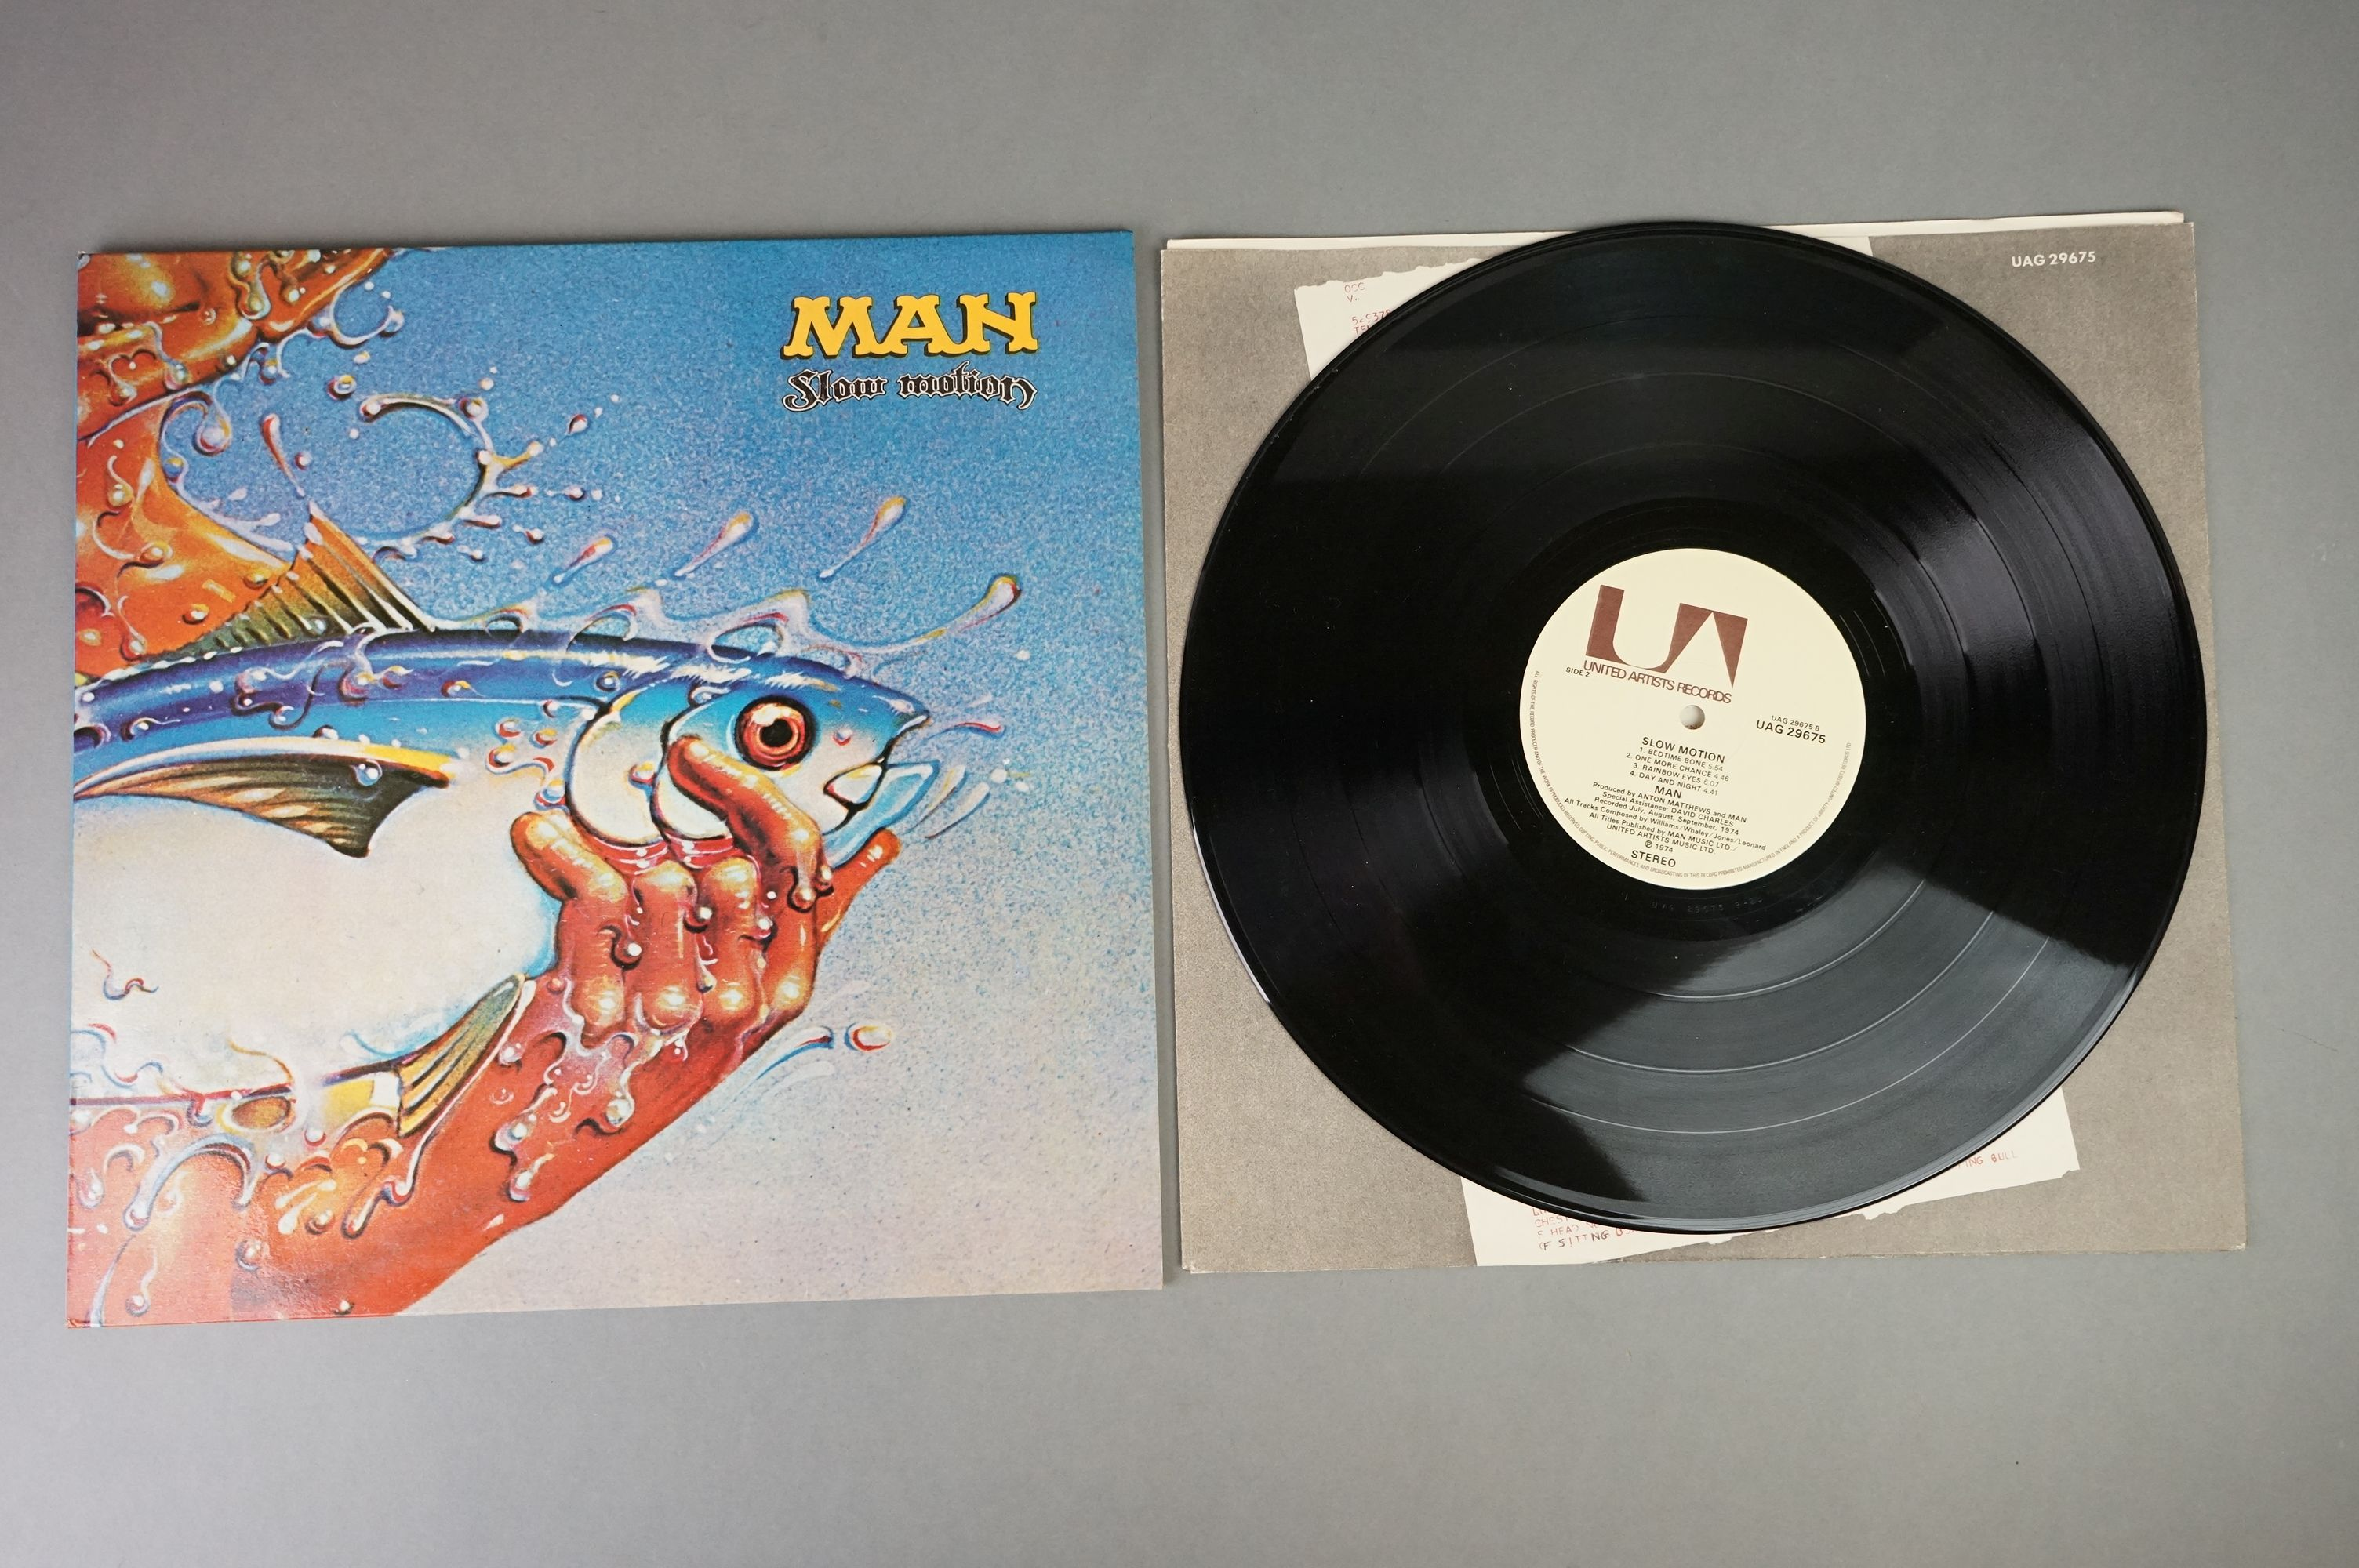 Vinyl - Man 2 LP's to include Slow Motion (UAG 29675) and Do You Like It Here (UAG 29236). Sleeves & - Image 5 of 7